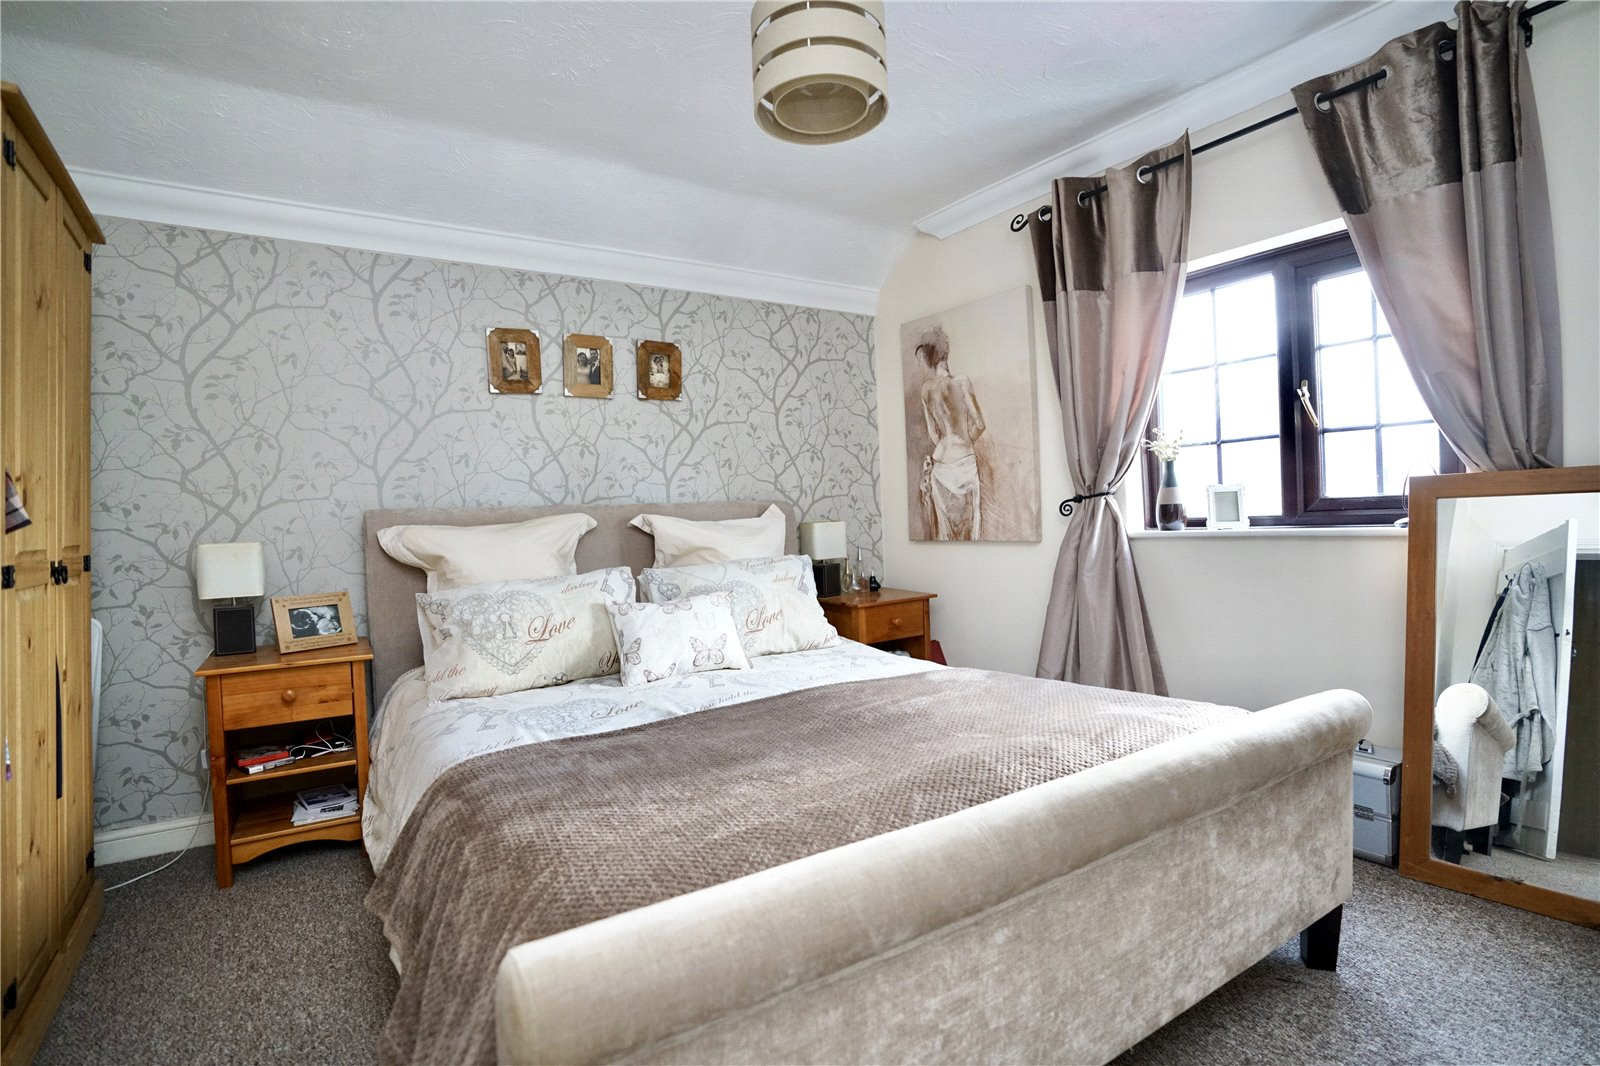 2 bed house for sale in Offord D'arcy  - Property Image 9